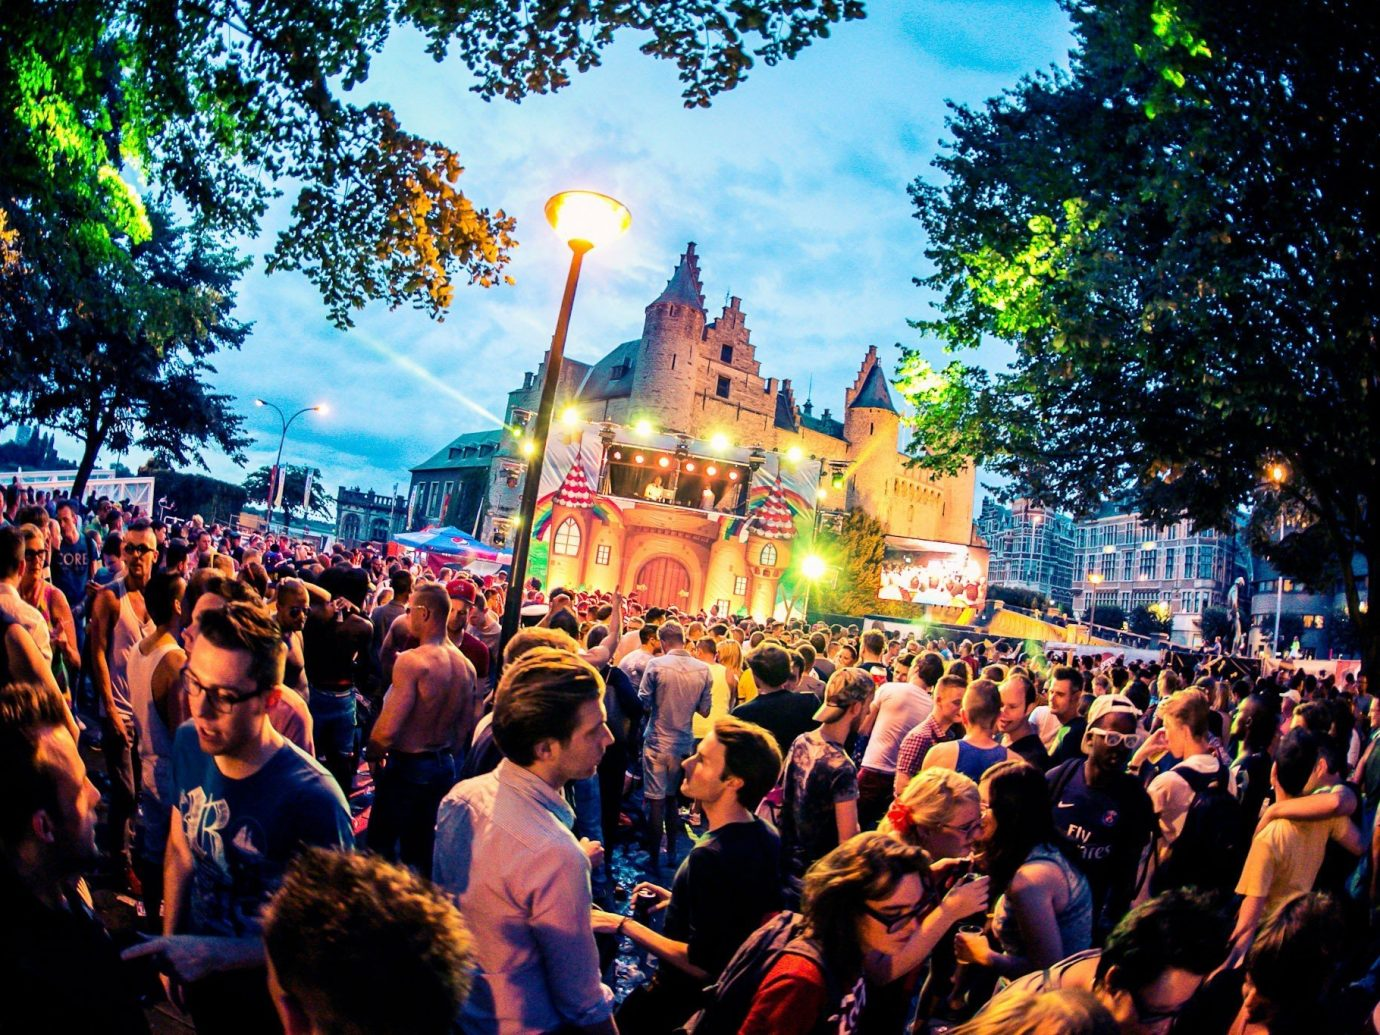 Trip Ideas tree person outdoor crowd people street group festival event audience Nature crowded gathered line surrounded